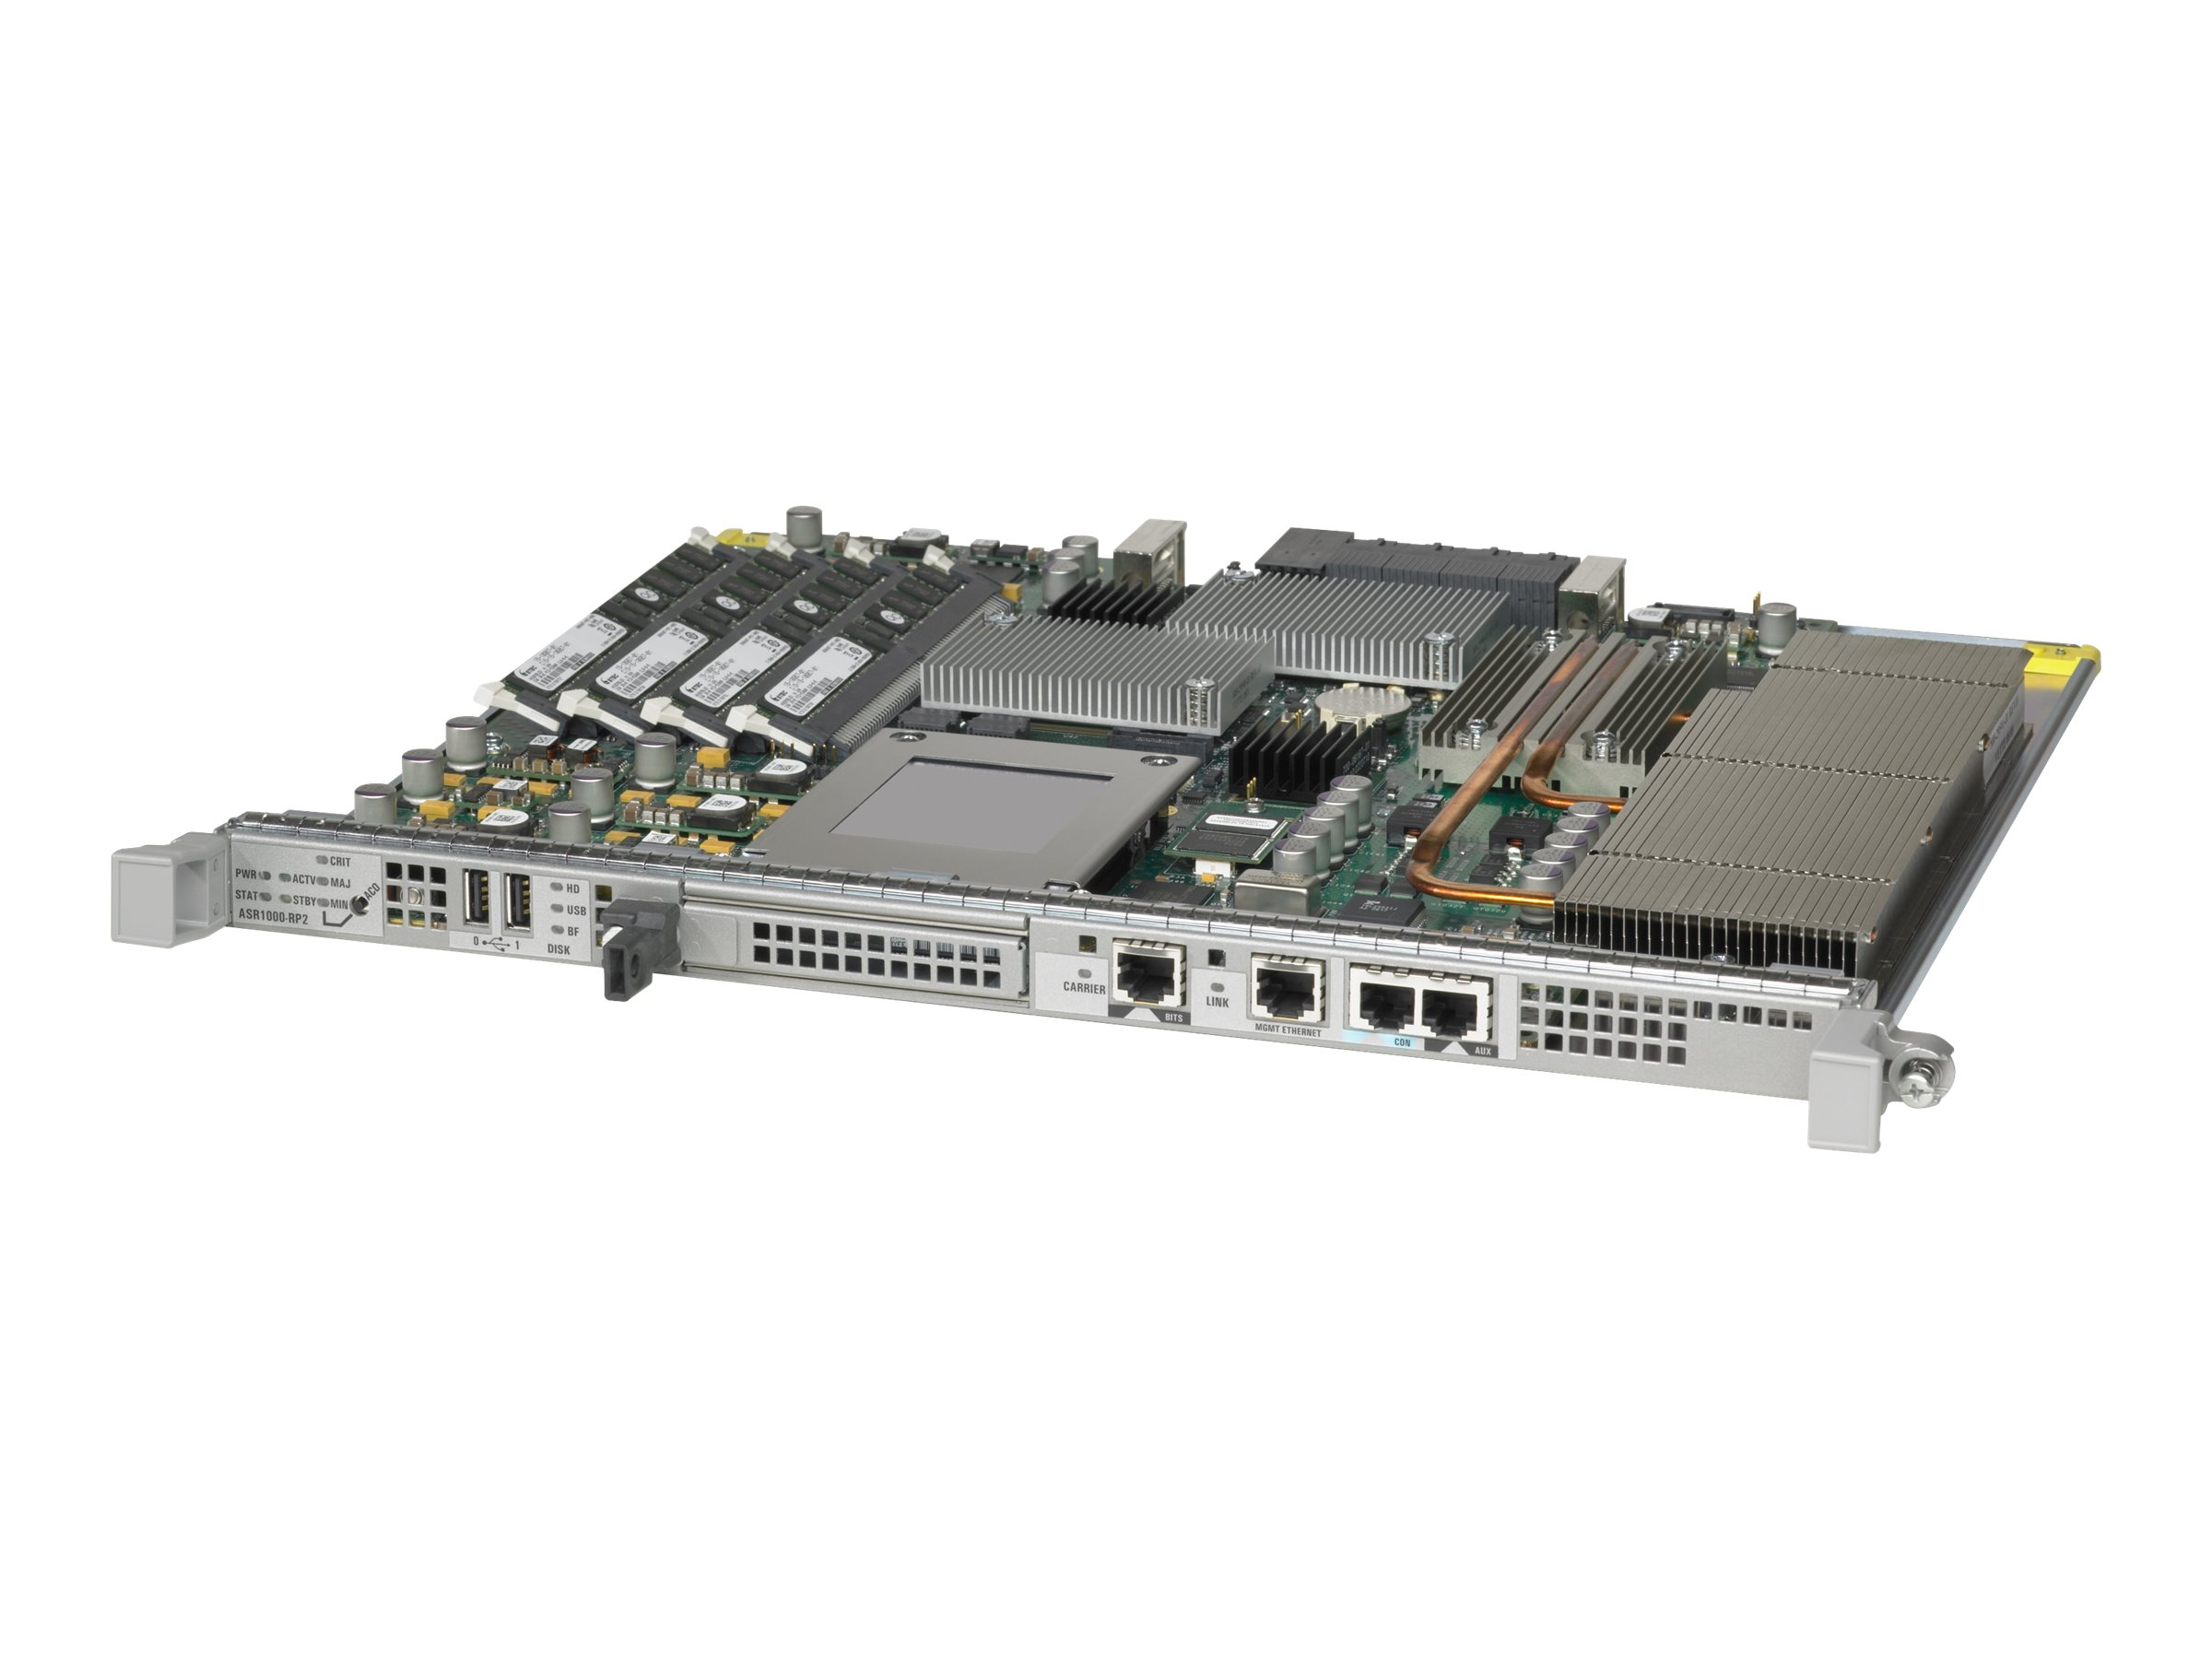 Cisco ASR 1000 Series Route Processor 2 - router - plug-in module